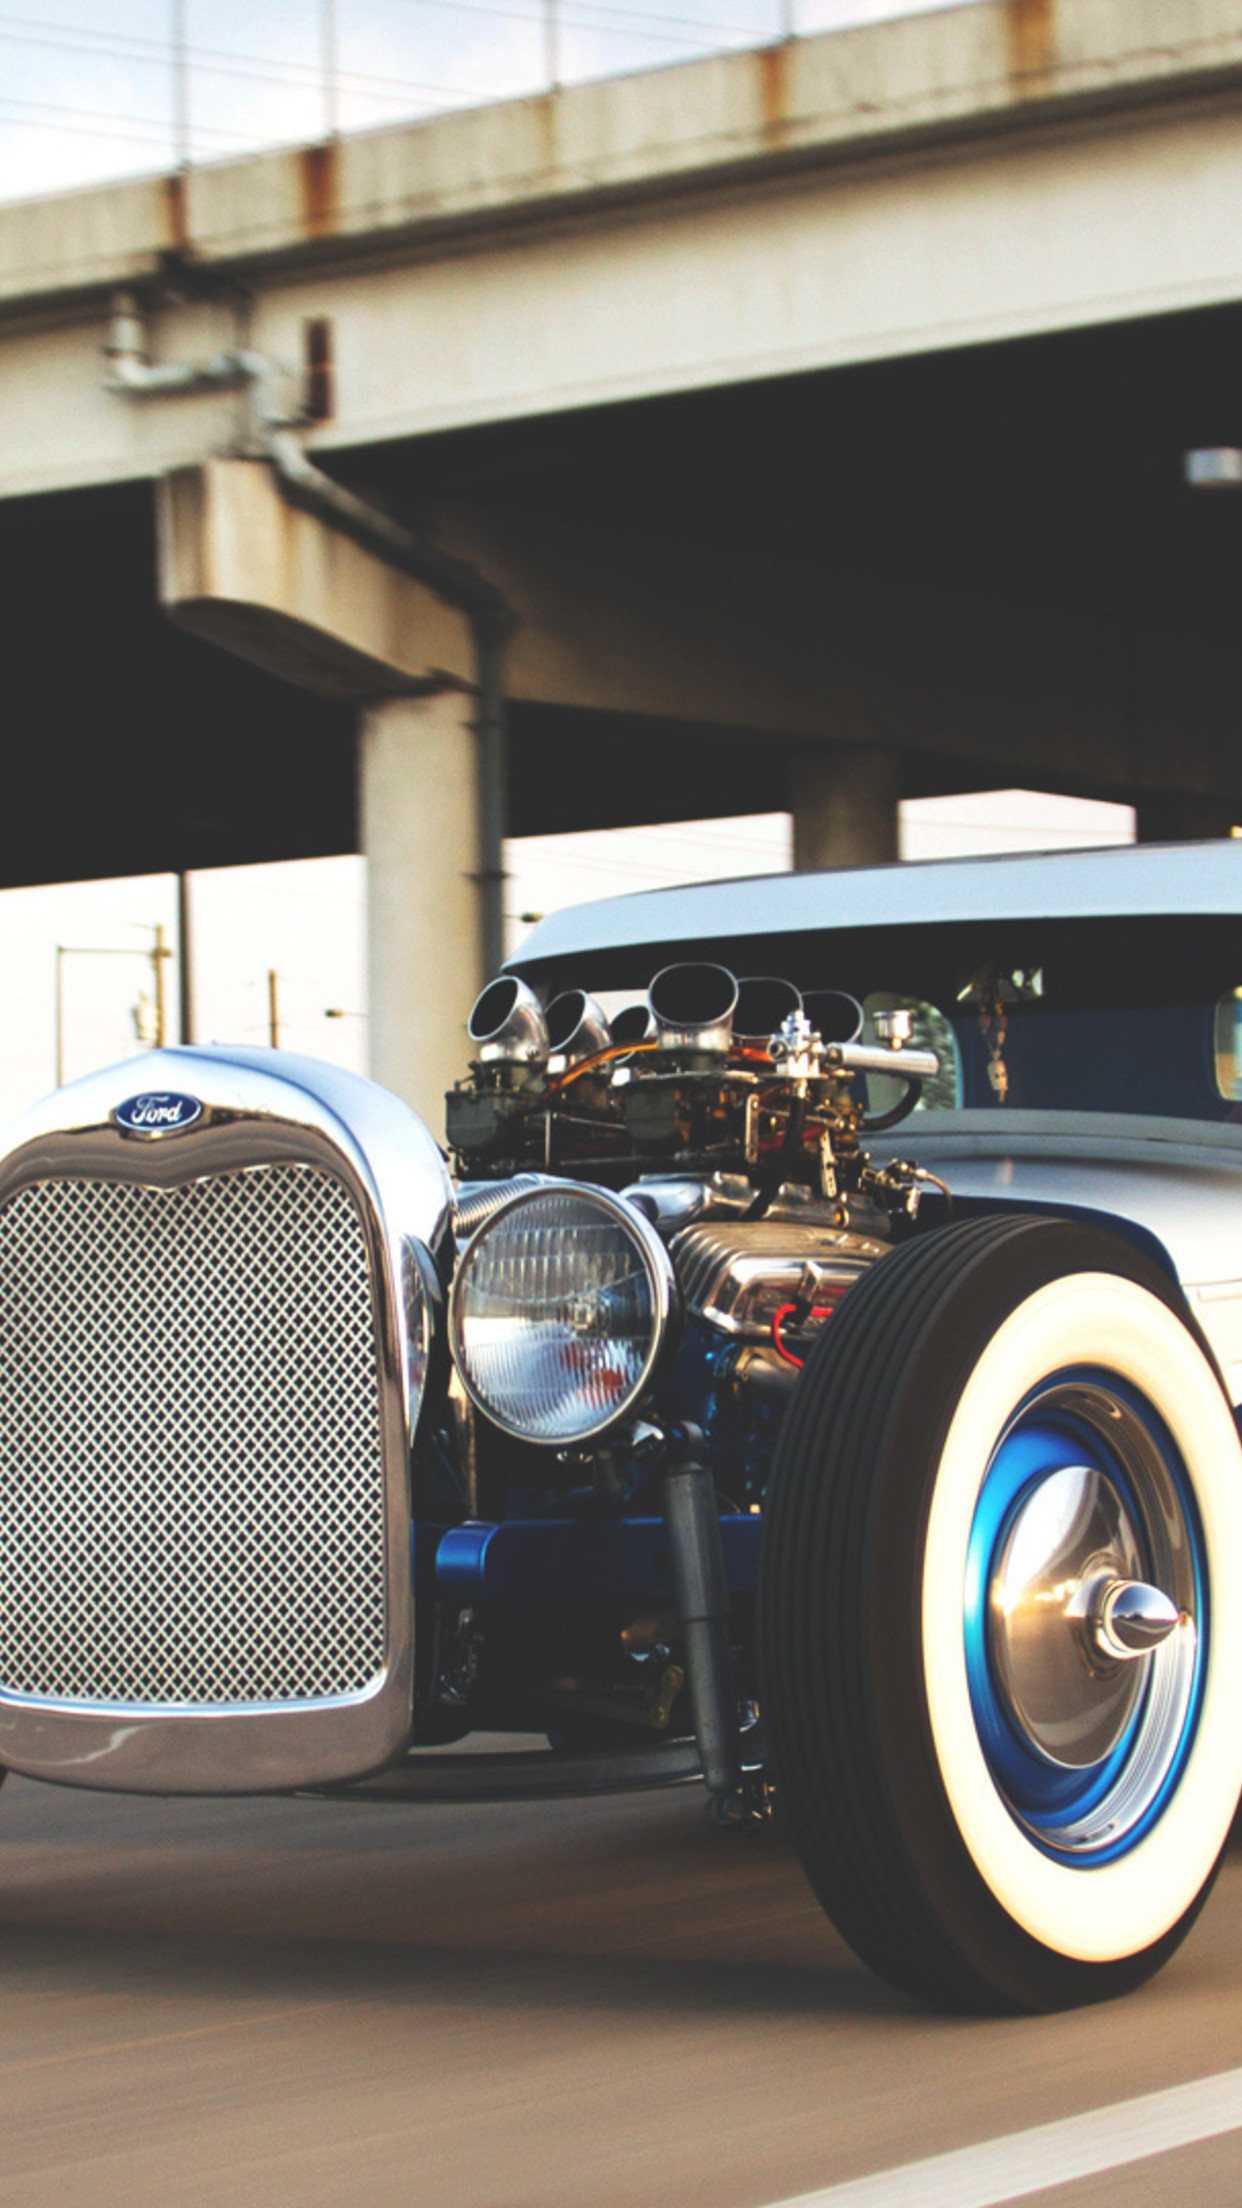 old car 1 3Wallpapers iPhone Parallax Old Car 3